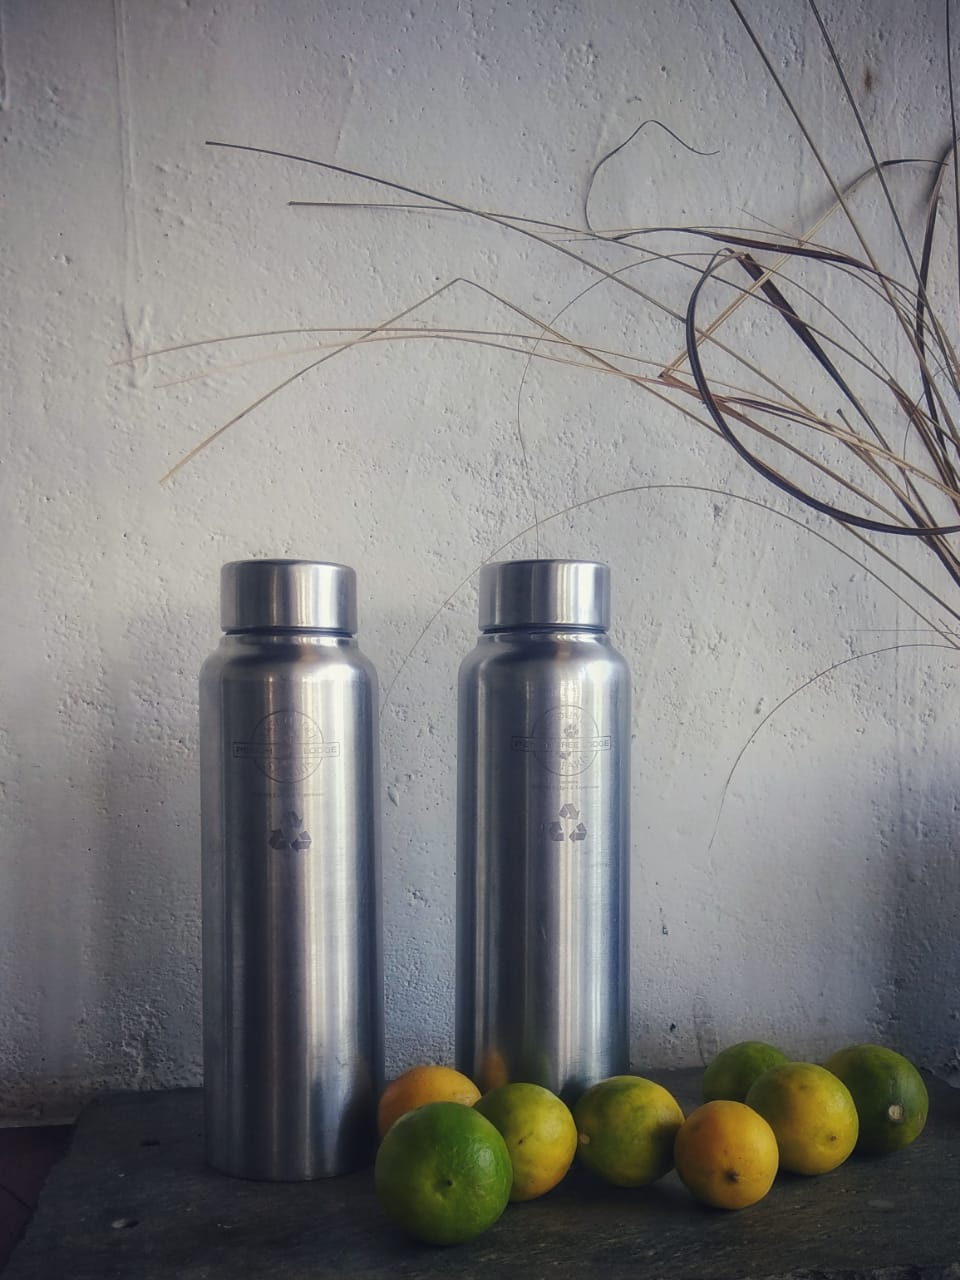 Steel sippers by pugdundee safaris.